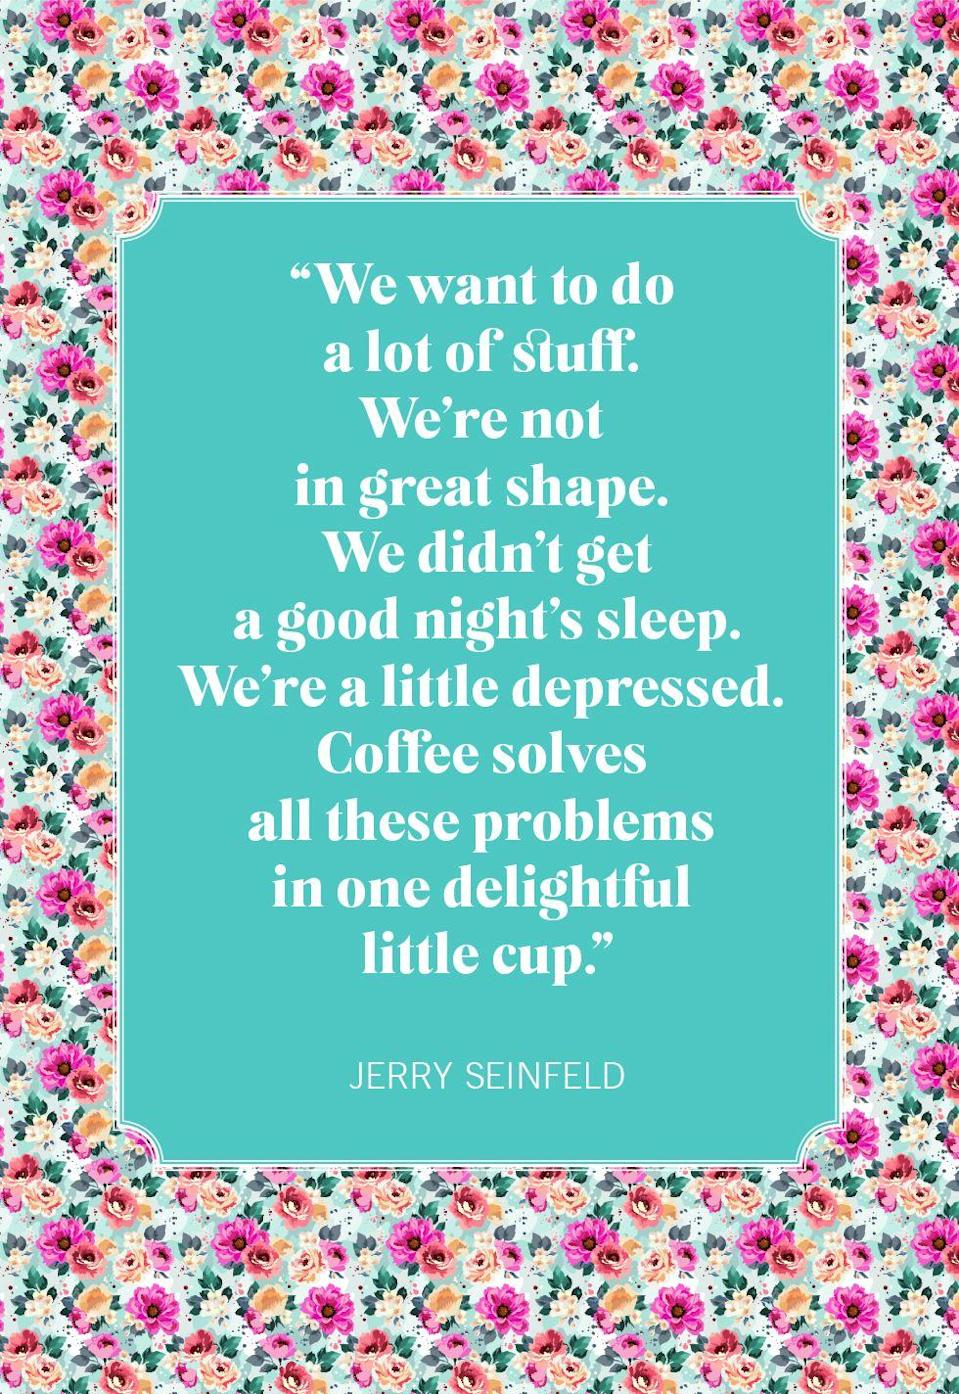 """<p>""""We want to do a lot of stuff. We're not in great shape. We didn't get a good night's sleep. We're a little depressed. Coffee solves all these problems in one delightful little cup.""""</p>"""